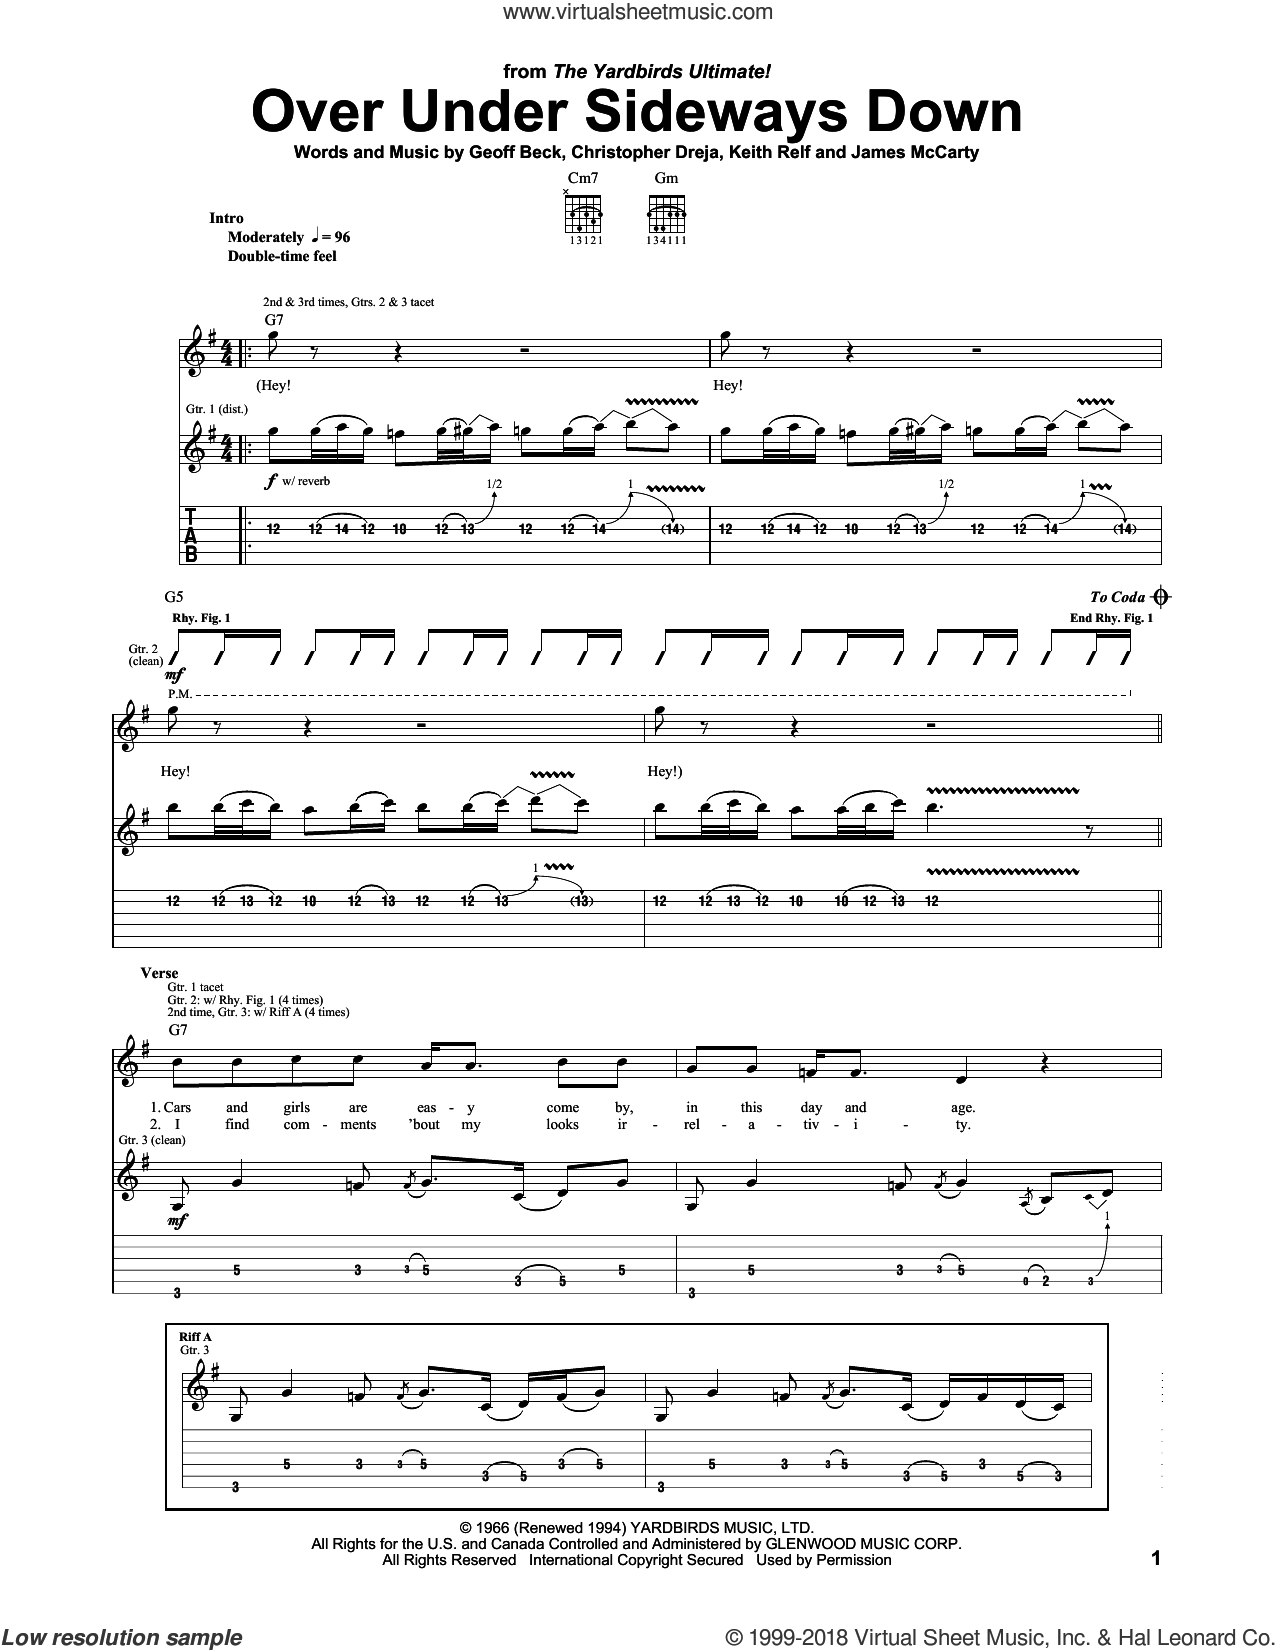 Over Under Sideways Down sheet music for guitar (tablature) by James McCarty